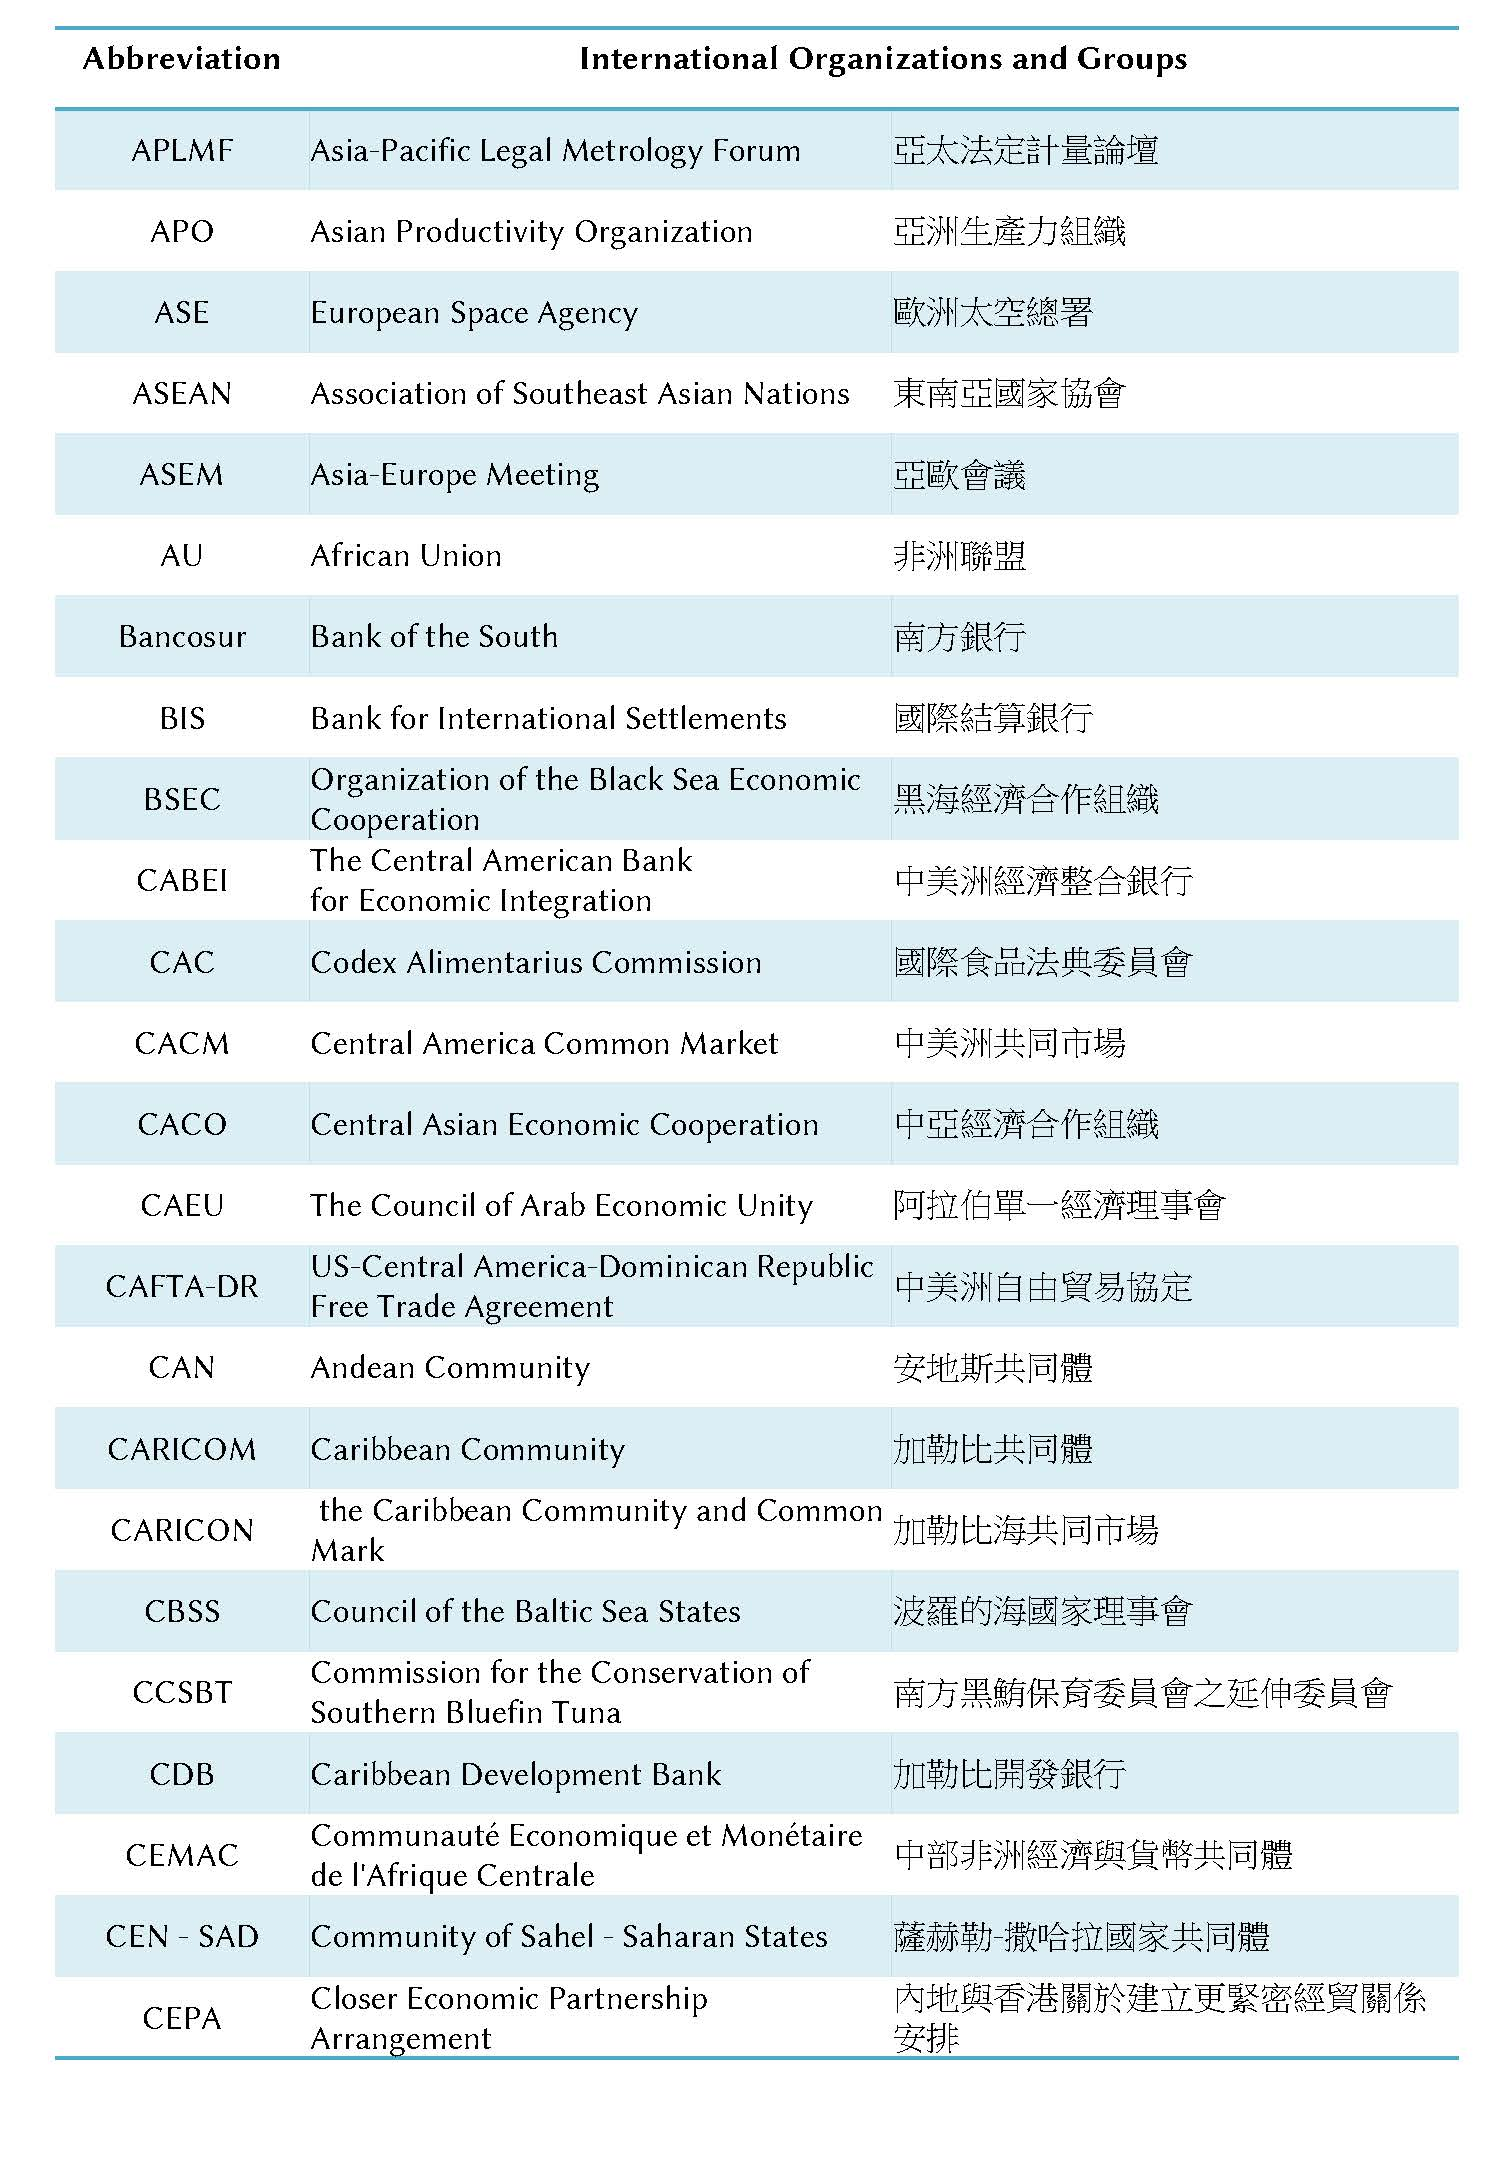 Abbreviations for International Organizations and Groups-2